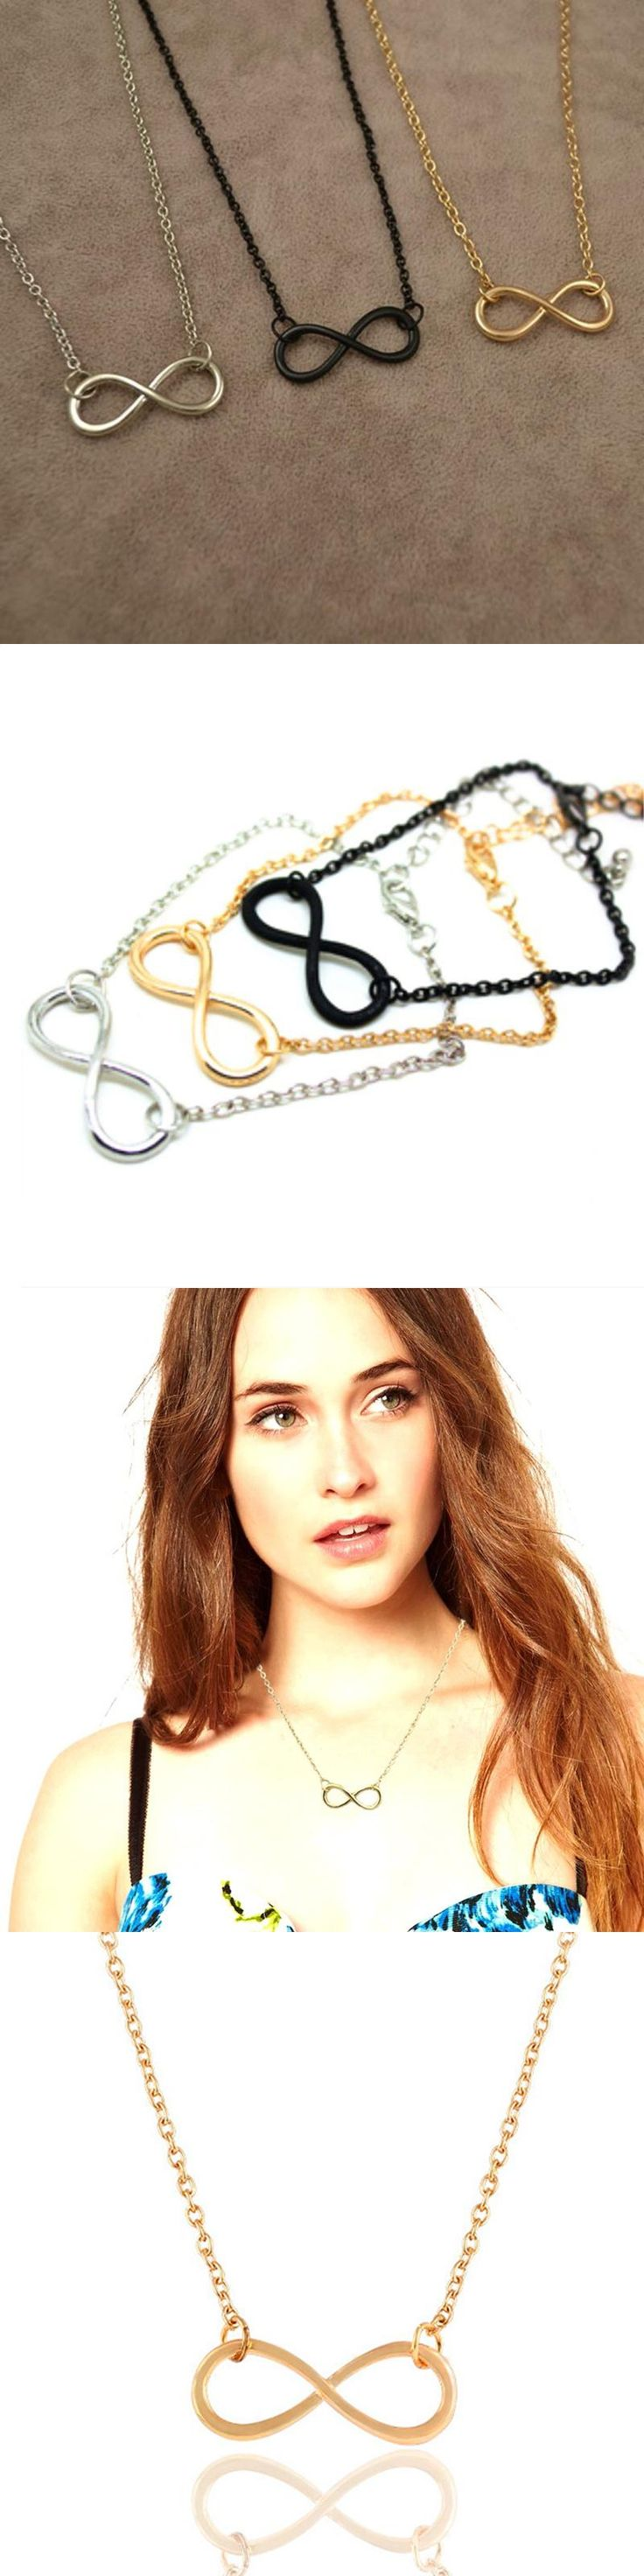 Hot Sales Fashion Luxury Charm Alloy Chain Infinity pendant necklace jewelry -CRYSTAL SHOP Free shipping